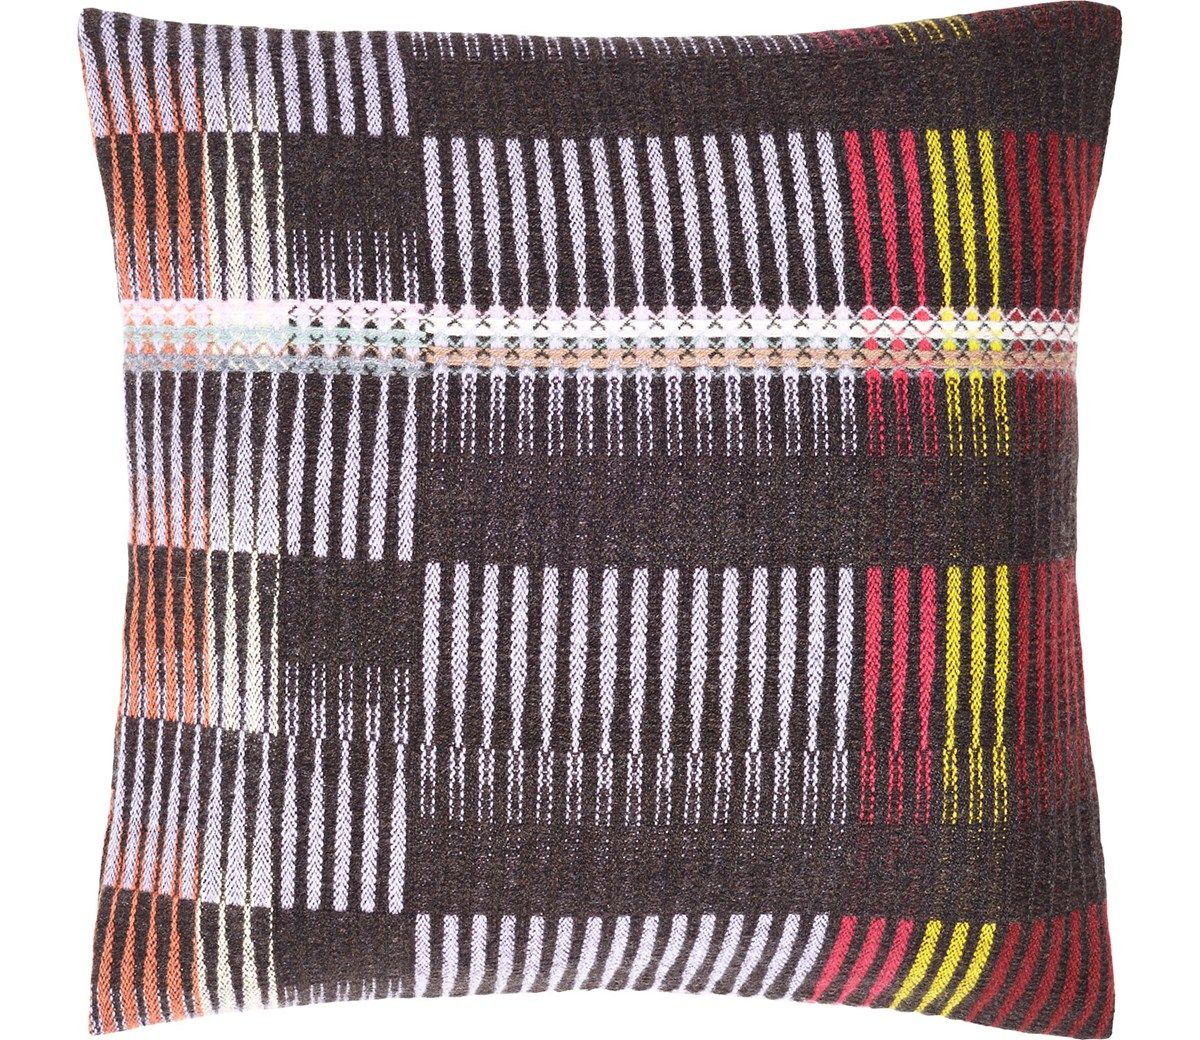 House&Home British Wovens in Cushions